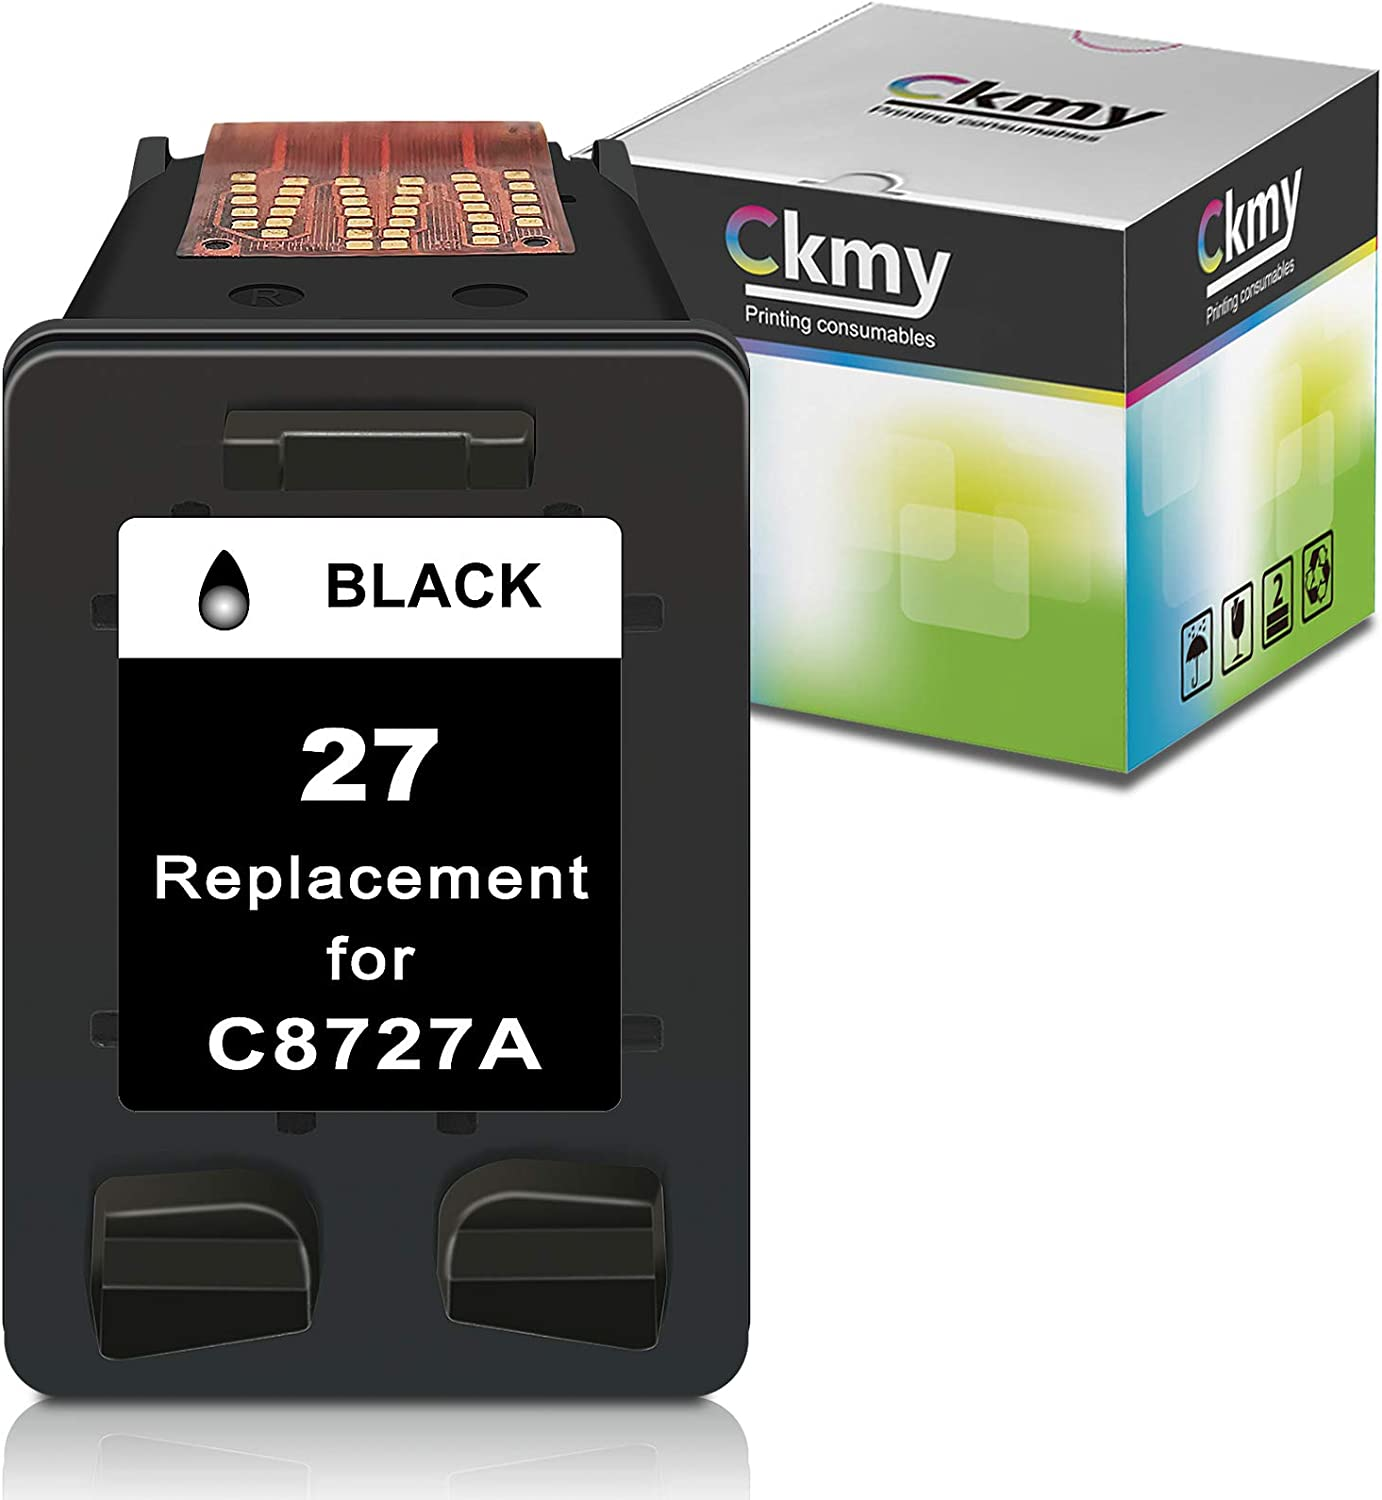 CKMY Remanufactured 27XL Ink Cartridge Replacement for HP 27 XL Used for DeskJet 3520 3650 3845 3550 3420 3745 3847 3320 3740 OfficeJet 5610 4315 5600 4255 PSC 1315 1310 2200 Printer (1 Black)